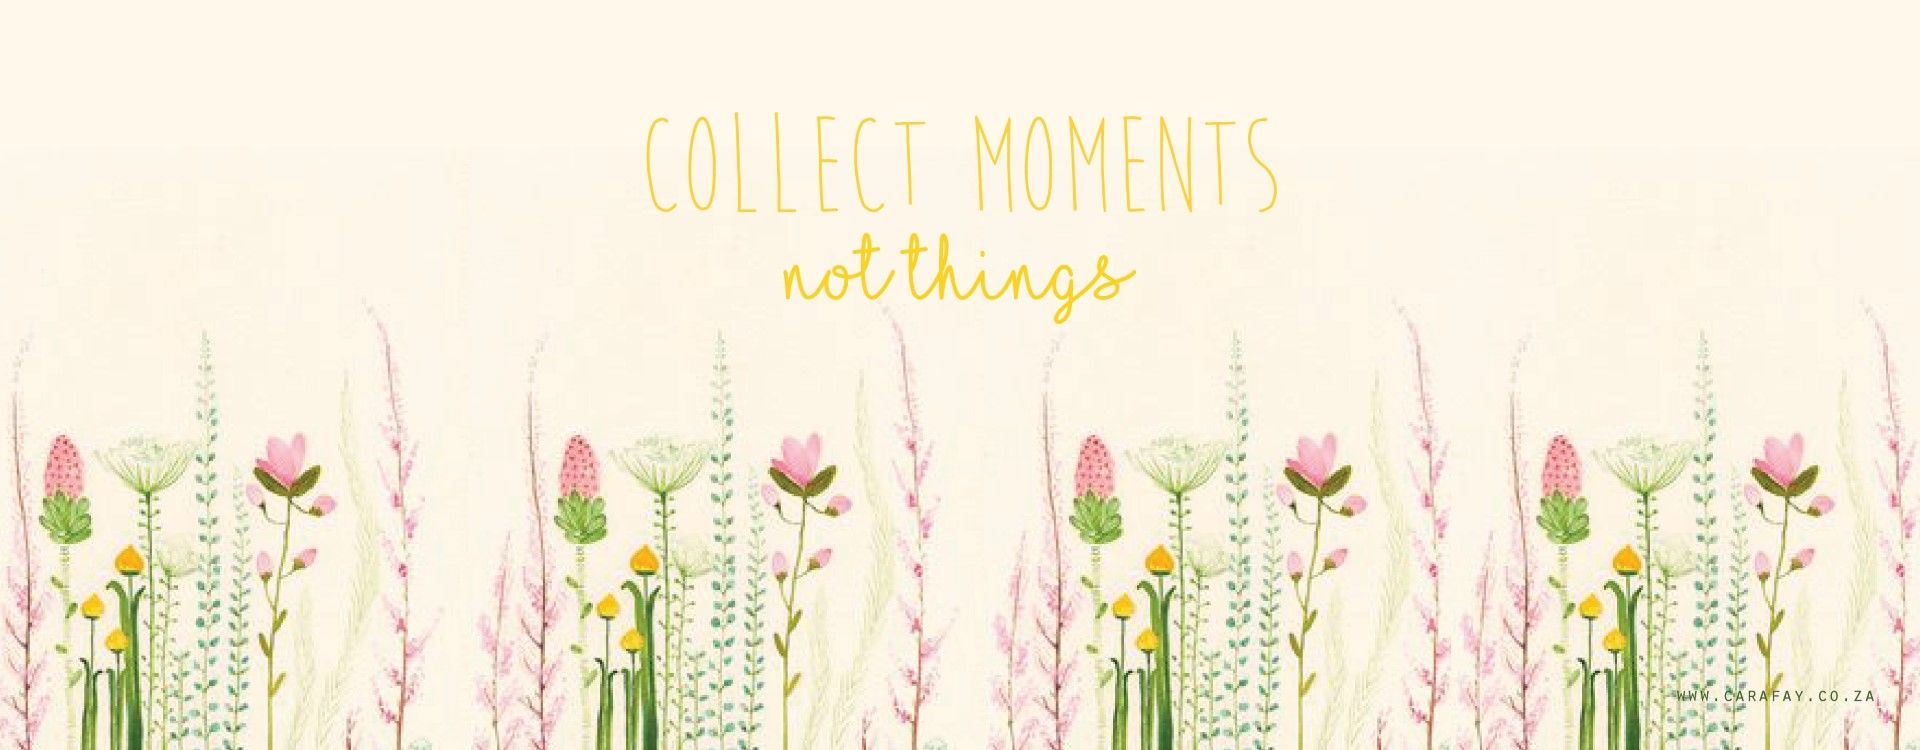 Collect Moments Free Download African Blogger In This Moment